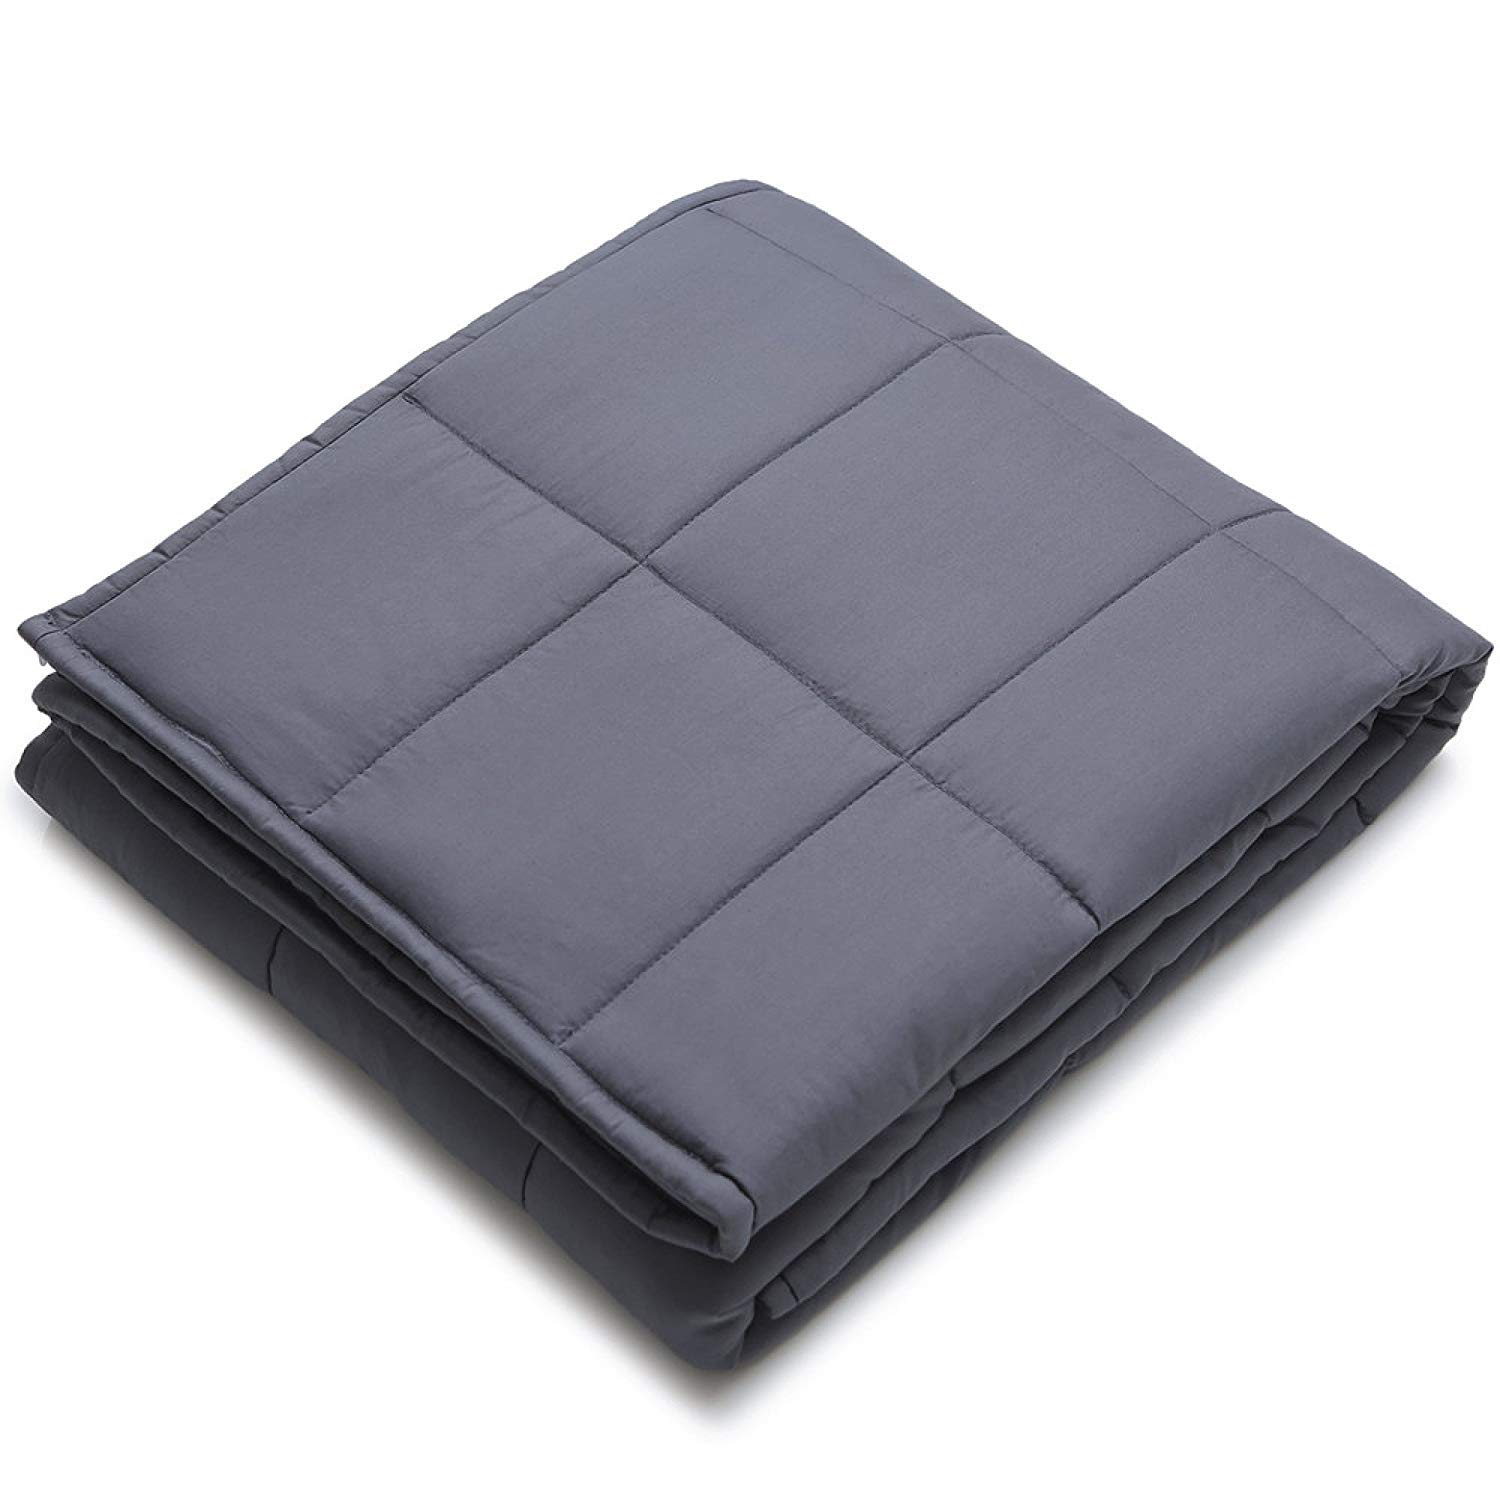 YnM Weighted Blanket (7 lbs for Kids, 41''x60'') | Gravity 2.0 Heavy Blanket | 100% Cotton Material with Glass Beads | Great Sleep Therapy for People with Anxiety, Autism, ADHD, Insomnia or Stress